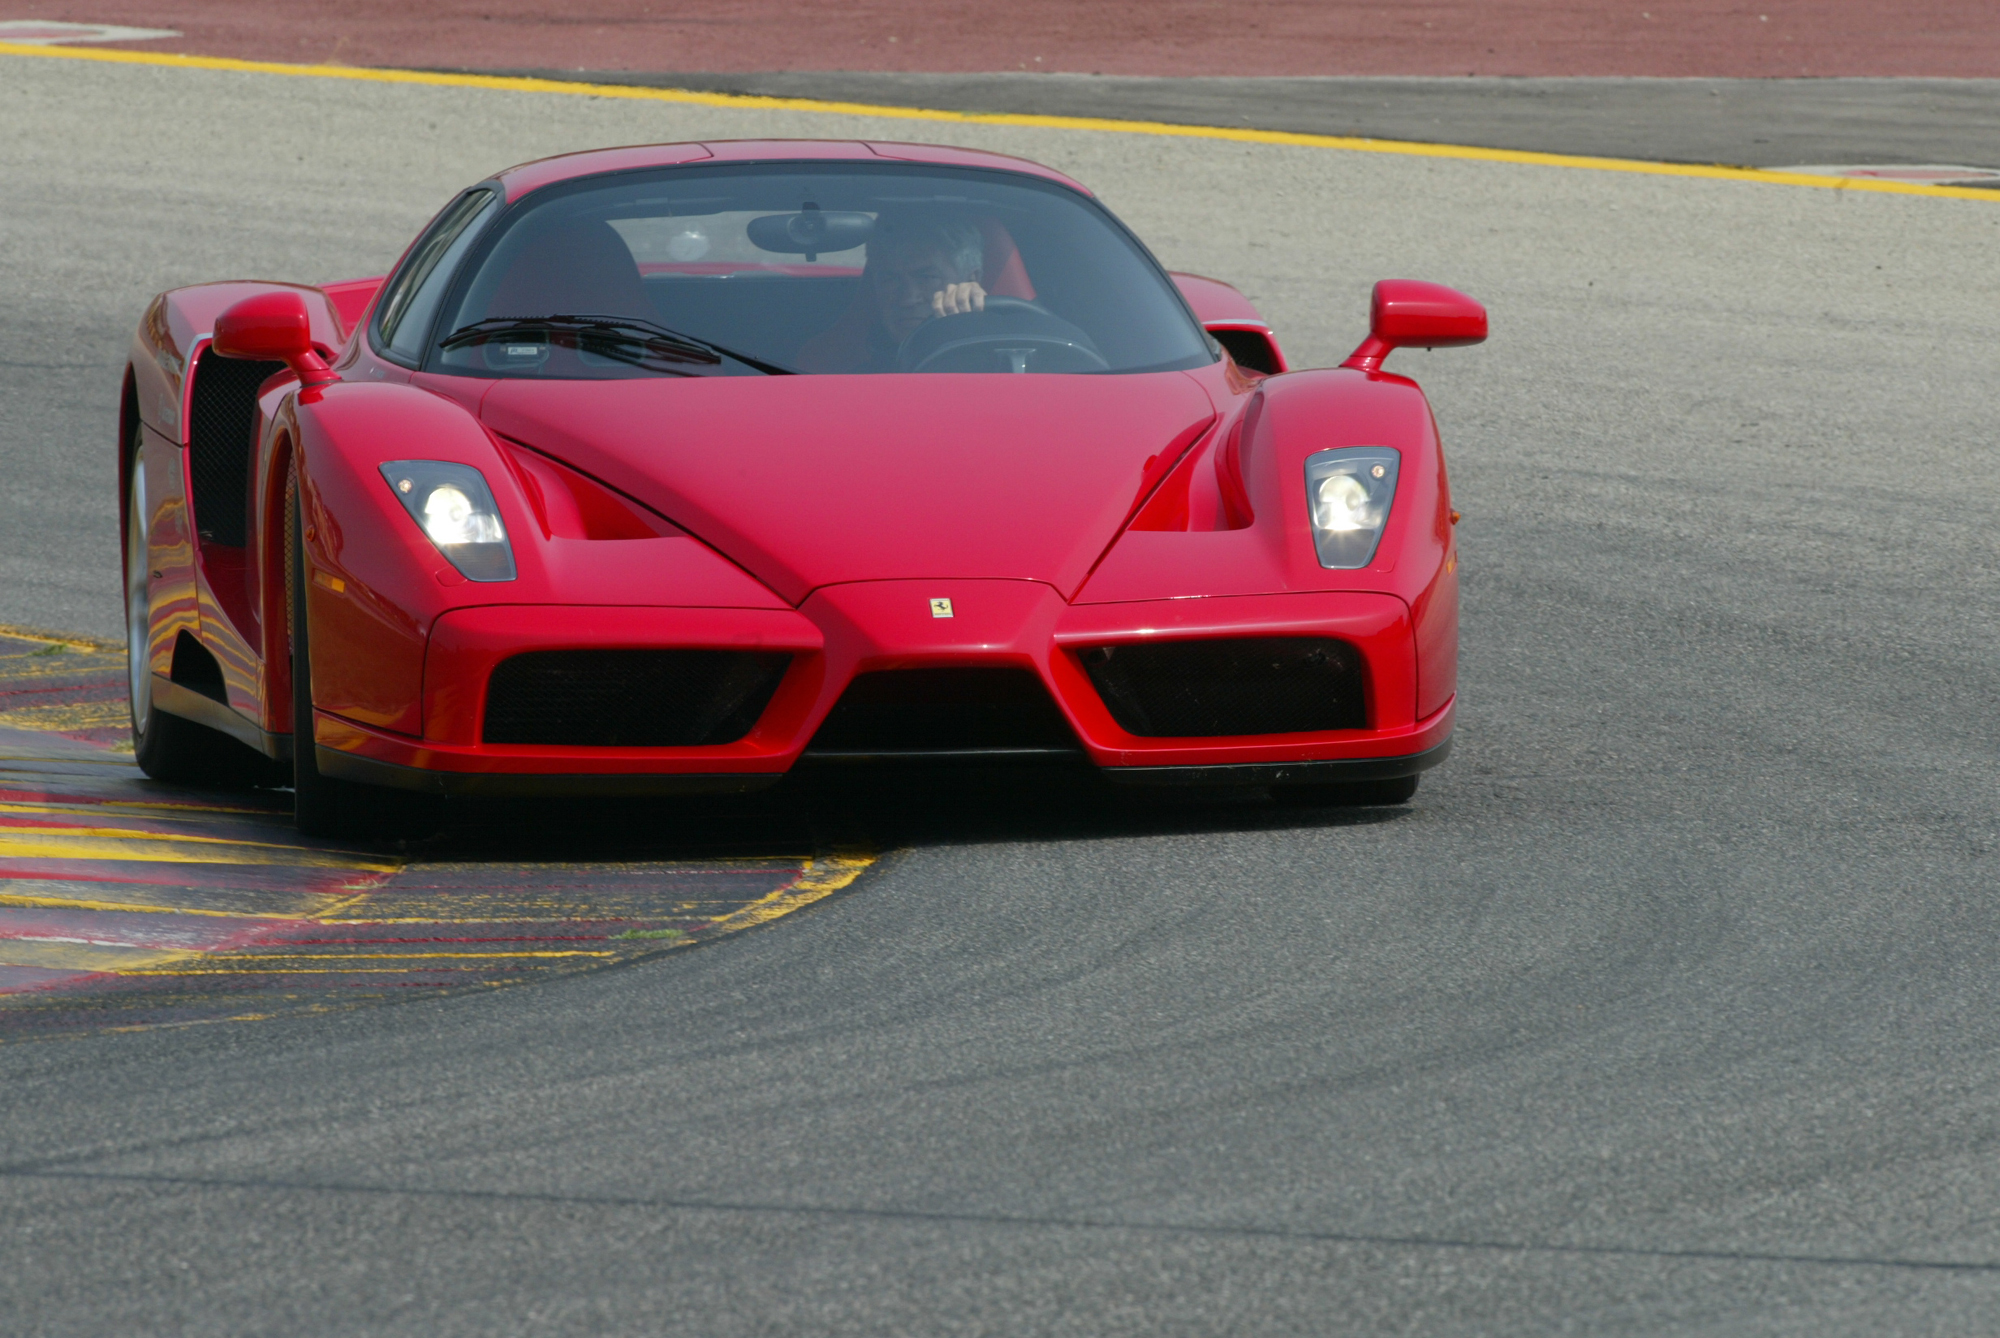 The Enzo was named after Ferrari's founder